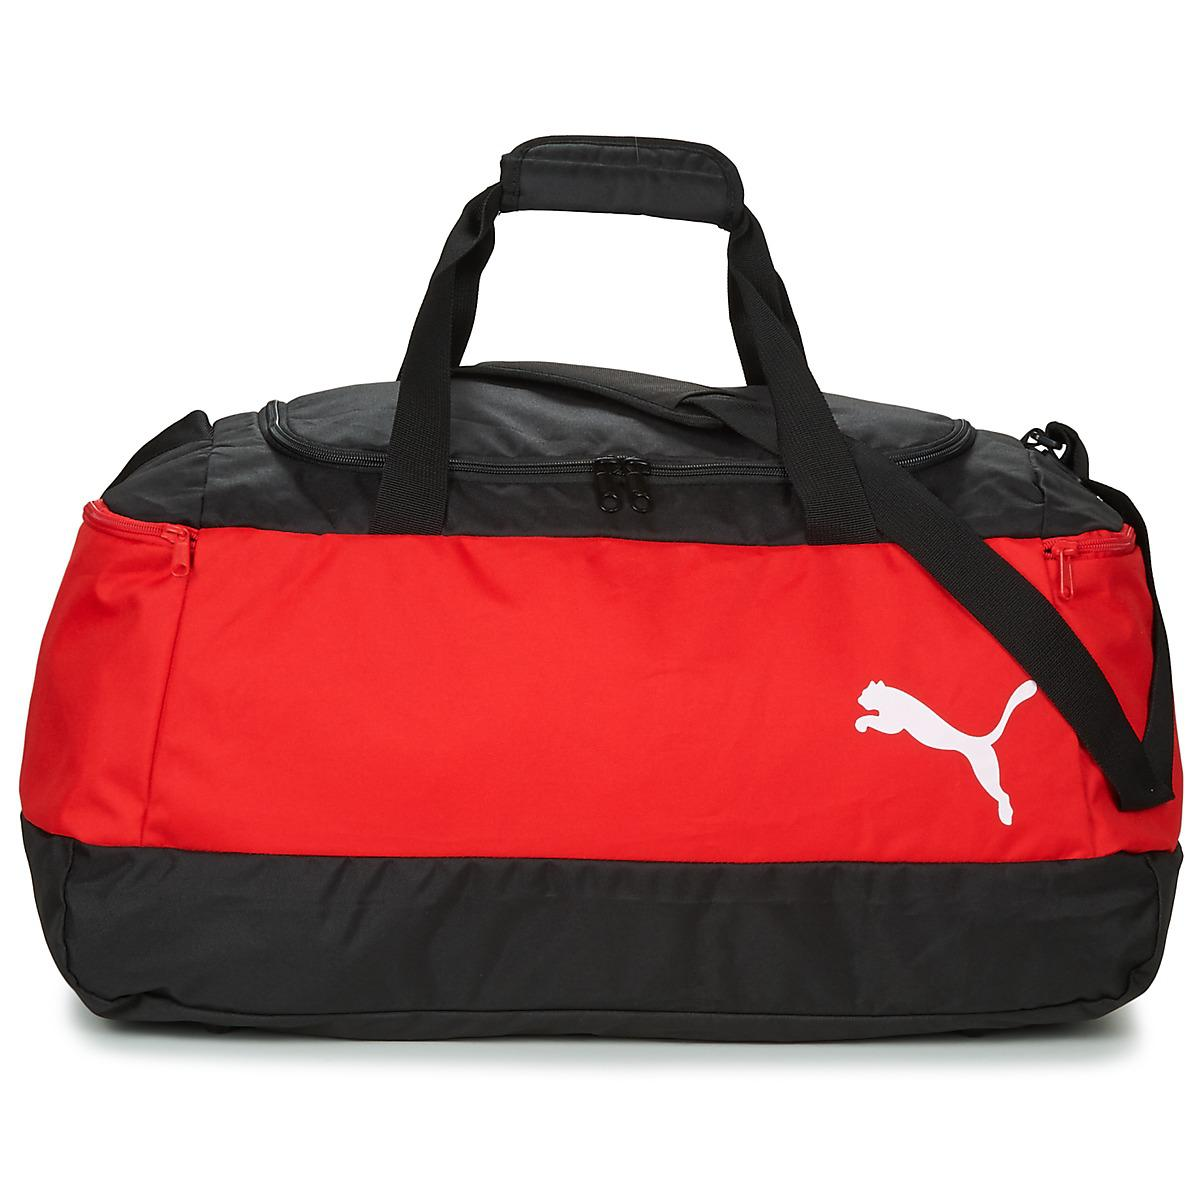 3b13ea742a2ccc PUMA Pro Training Ii Medium Bag Men's Sports Bag In Black in Black ...